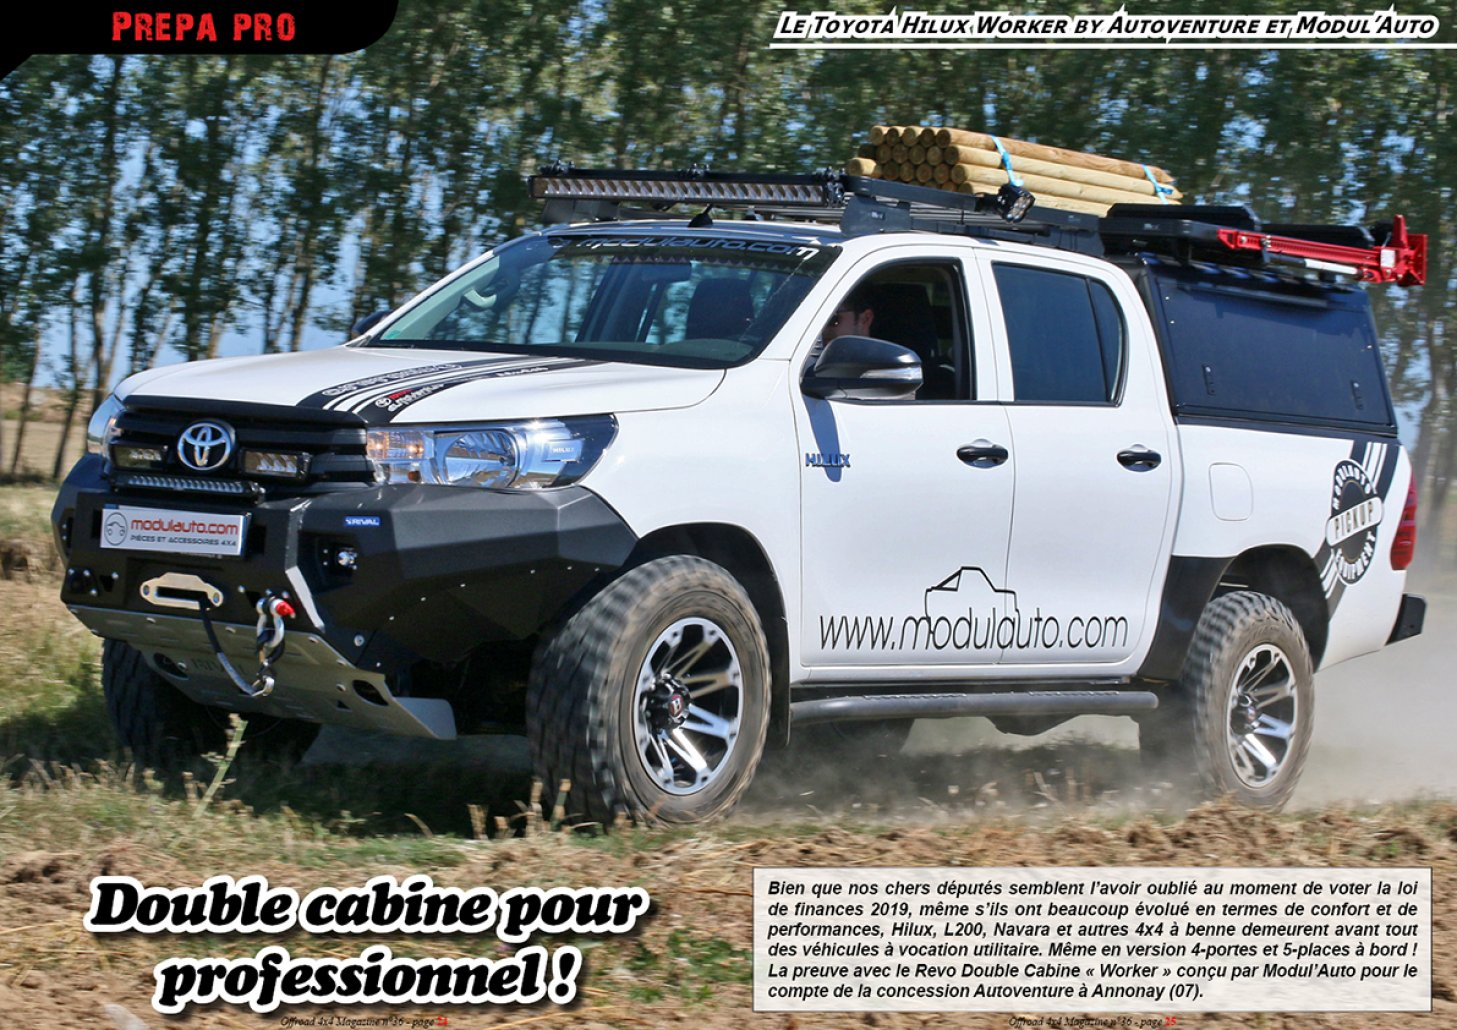 Le Toyota Hilux Worker by Modul'Auto